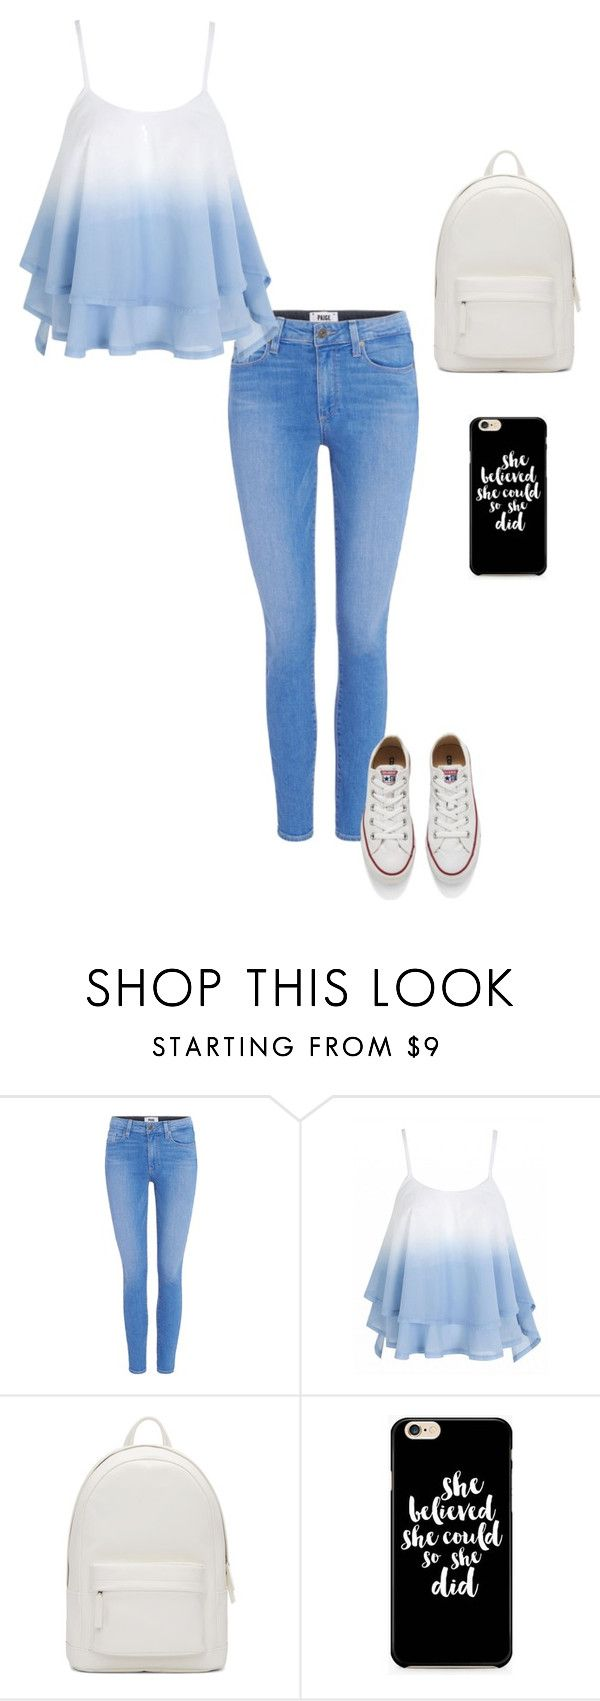 """Untitled #118"" by crissgab12 on Polyvore featuring Paige Denim, PB 0110 and Converse"